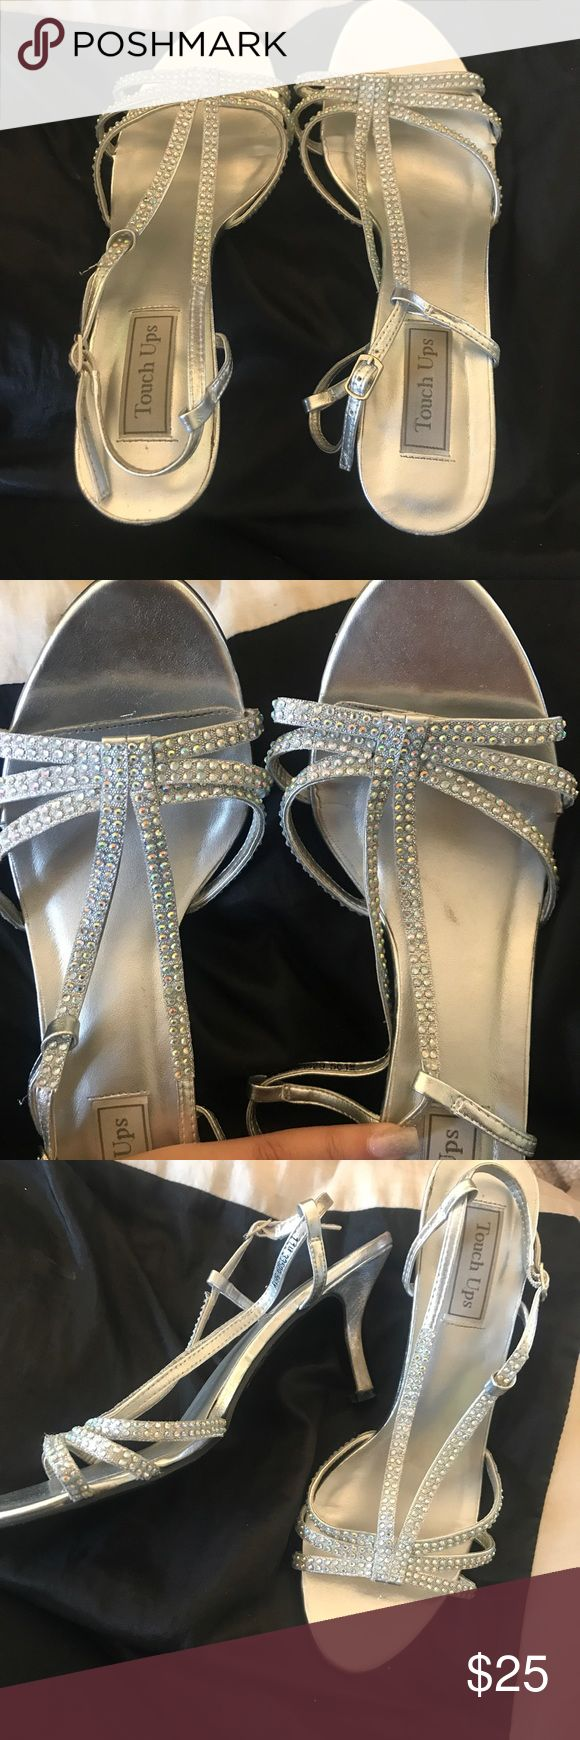 Silver Kitten Heels! Silver Kitten Heels! Marks on the sole of the shoe. Very comfy! Touch Ups Shoes Heels